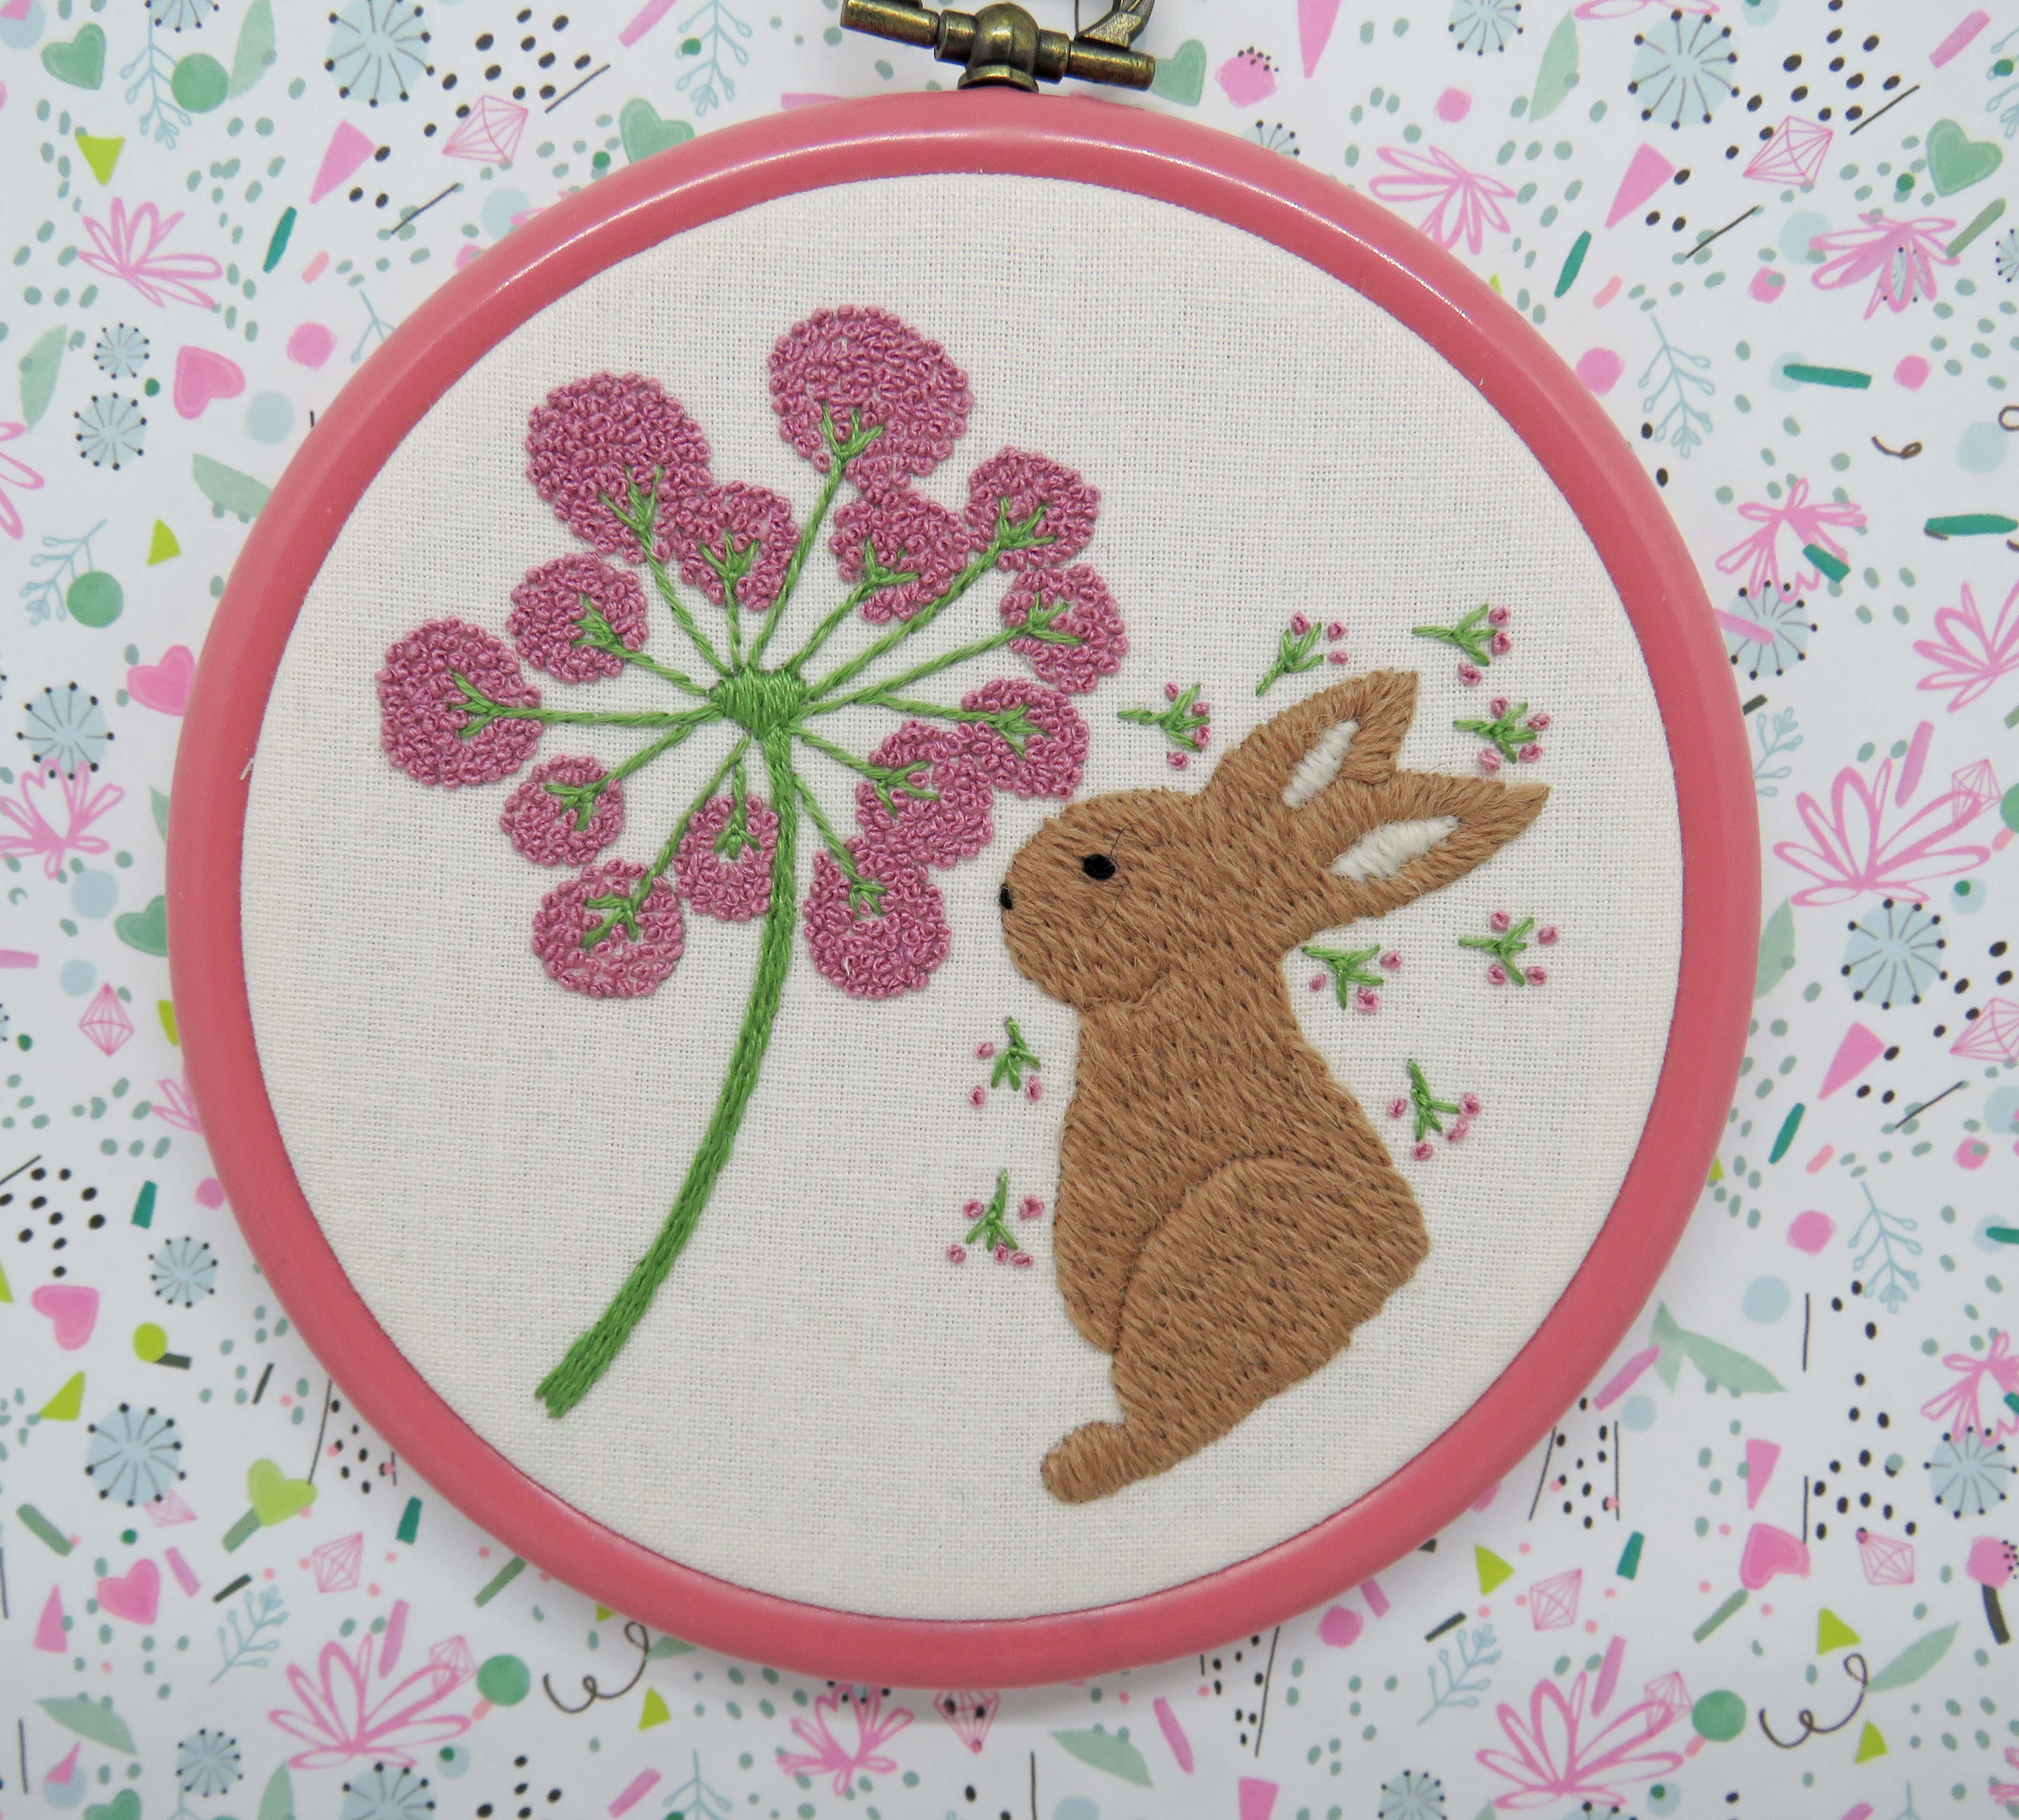 Hand embroidery rabbit pattern by stitchdoodles